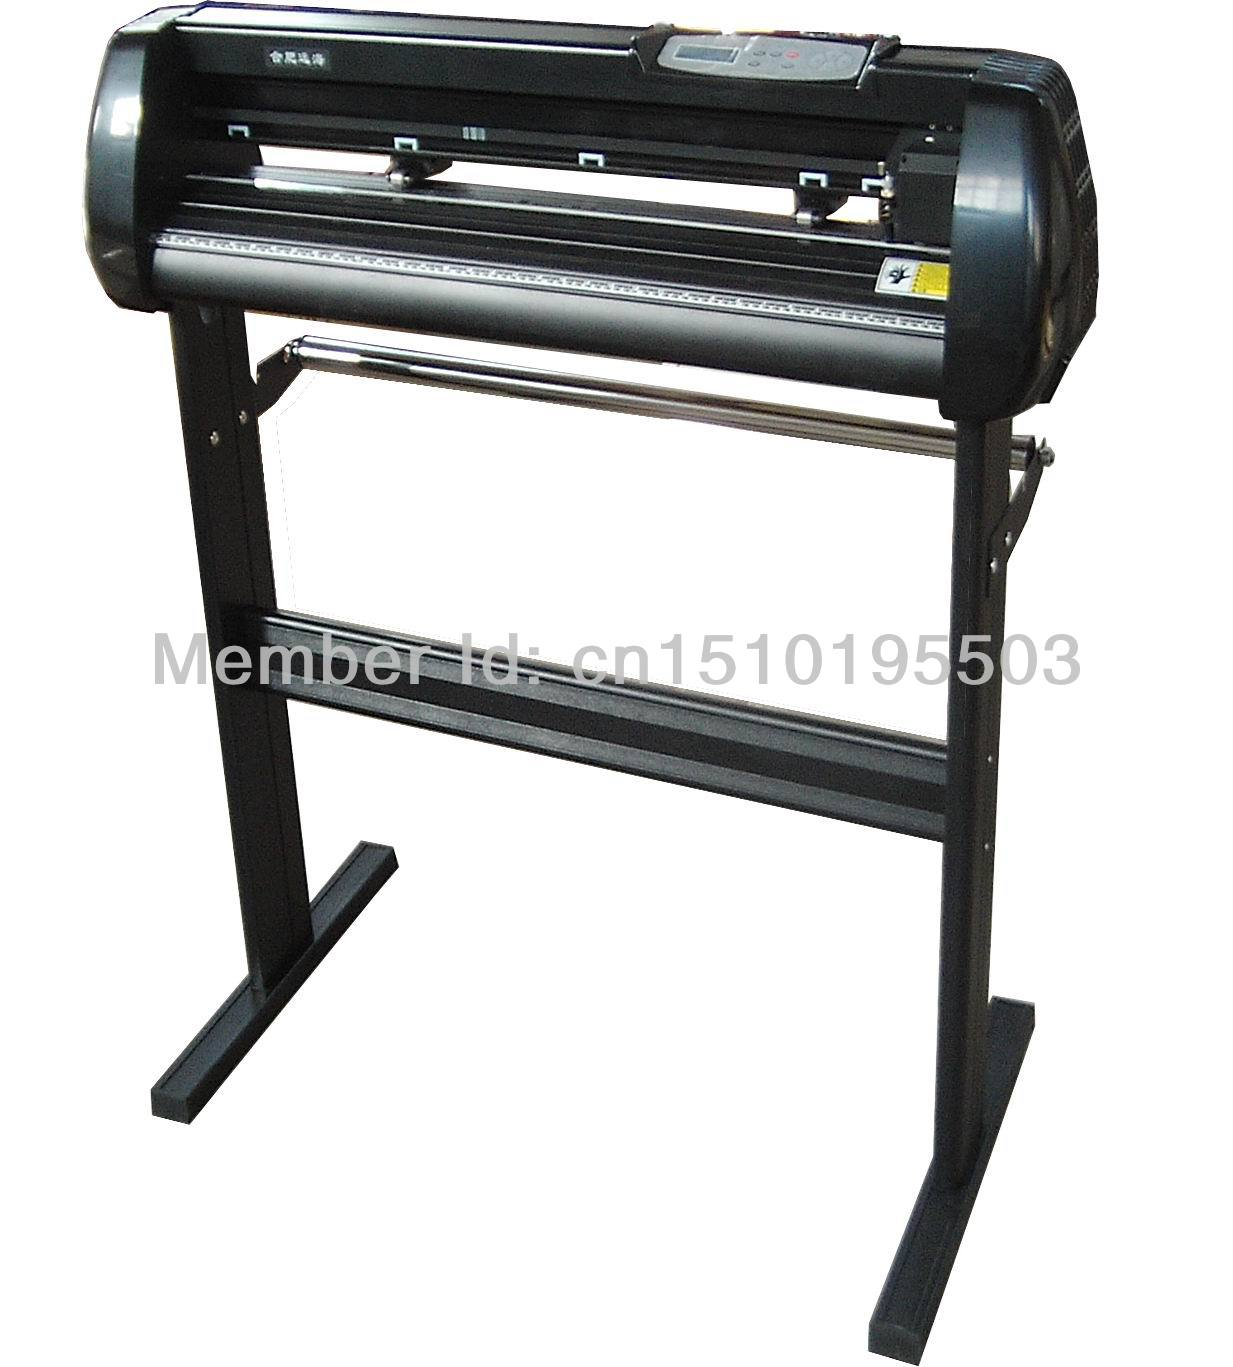 Standard USB connection Cutting Plotter 870 for Sale(China (Mainland))